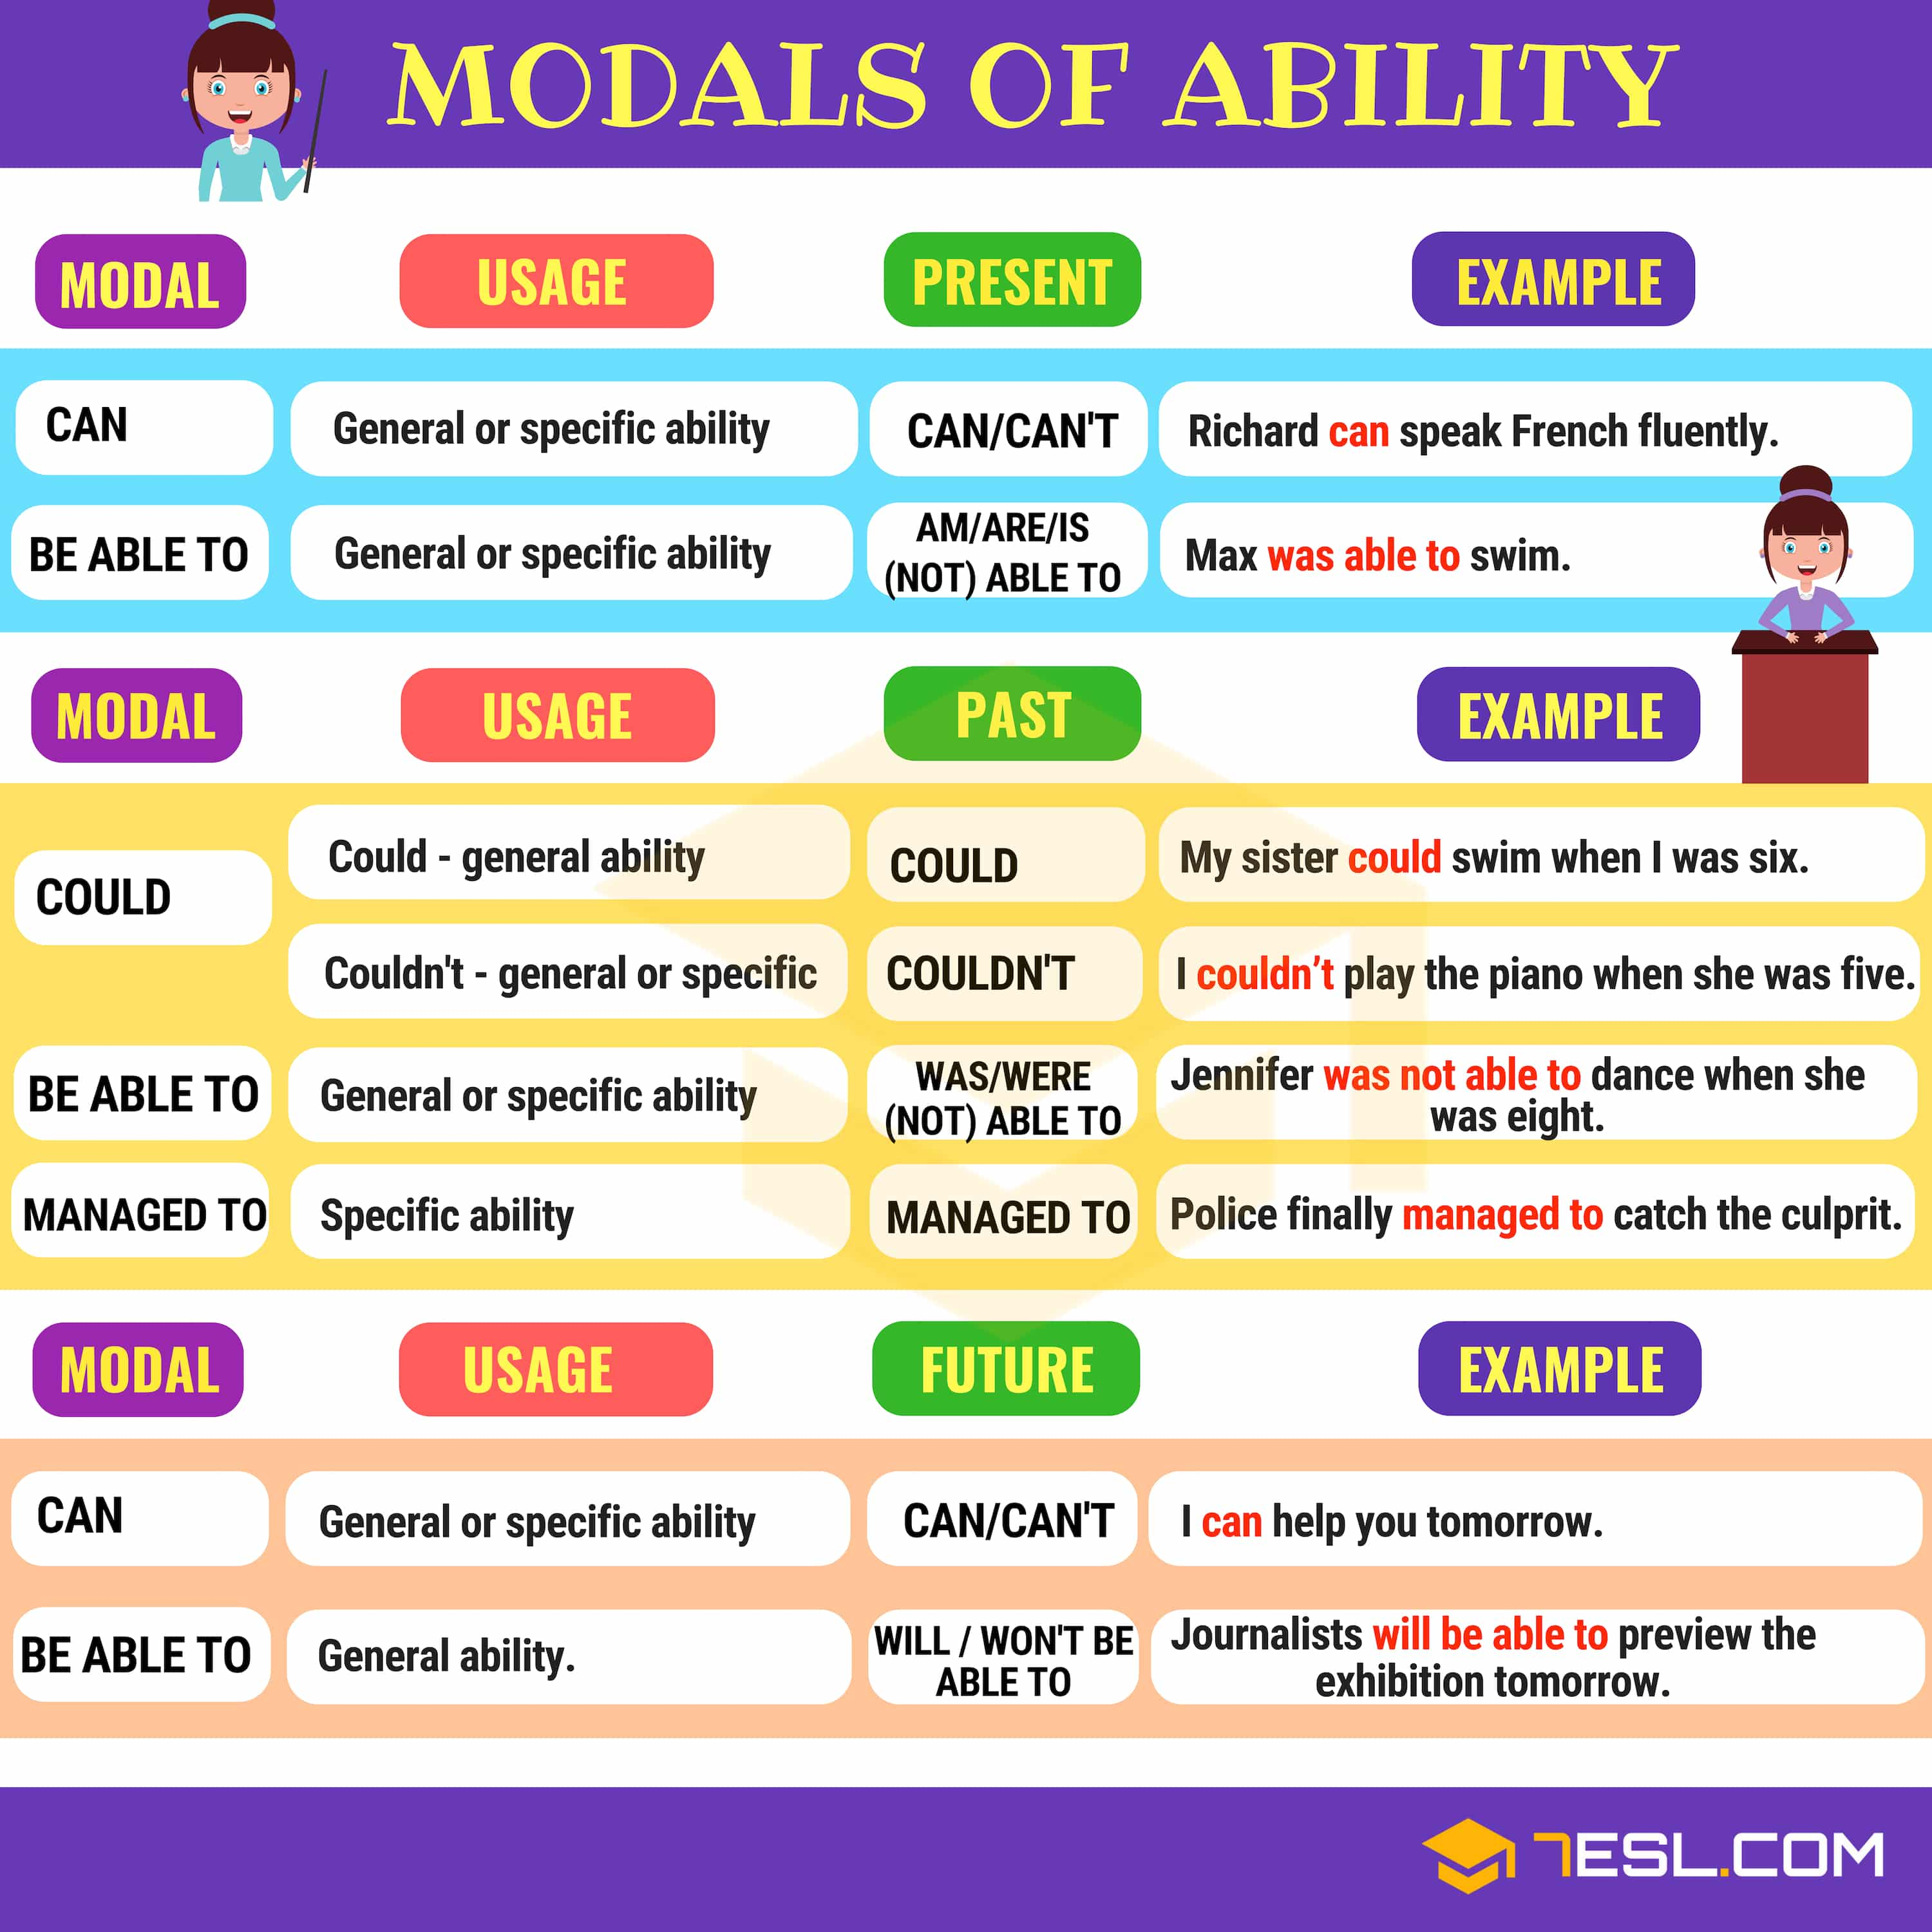 Modals Of Ability Modal Verbs To Express Ability